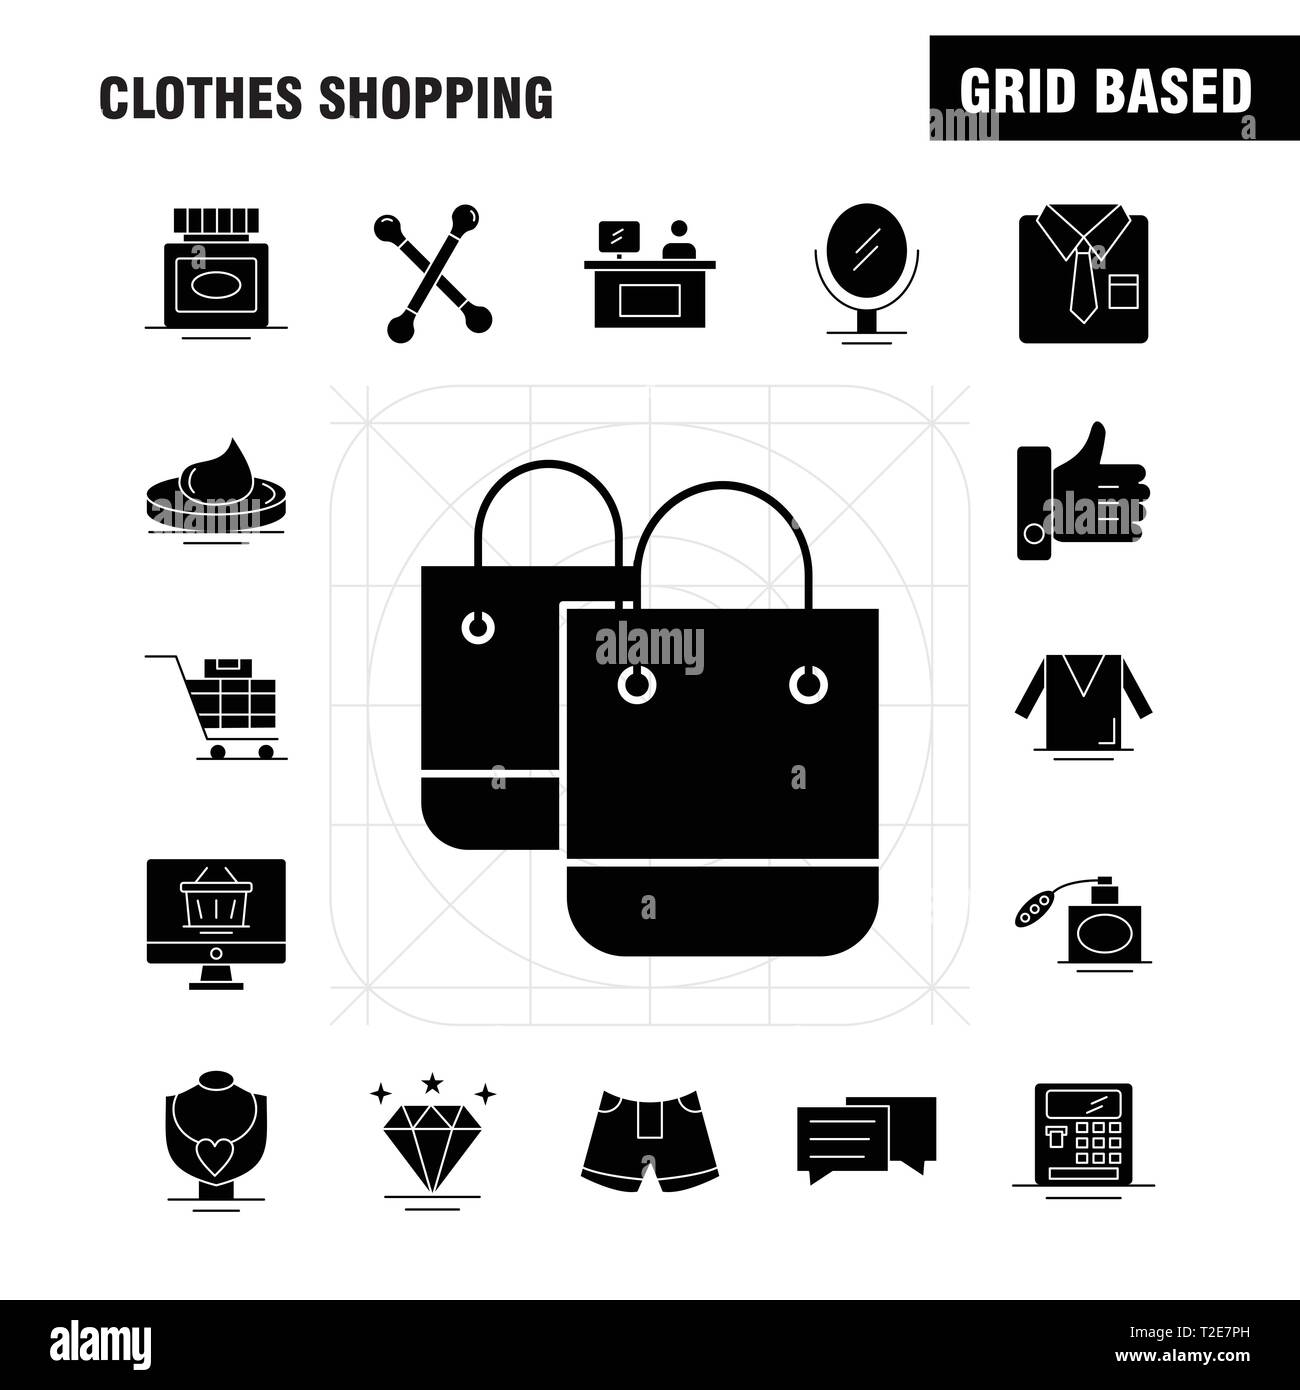 Clothes Shopping Solid Glyph Icon for Web, Print and Mobile UX/UI Kit. Such as: Shirt, Clothes, Fold, Folding, Dress, Beauty, Cosmetic, Cream, Pictogr - Stock Image